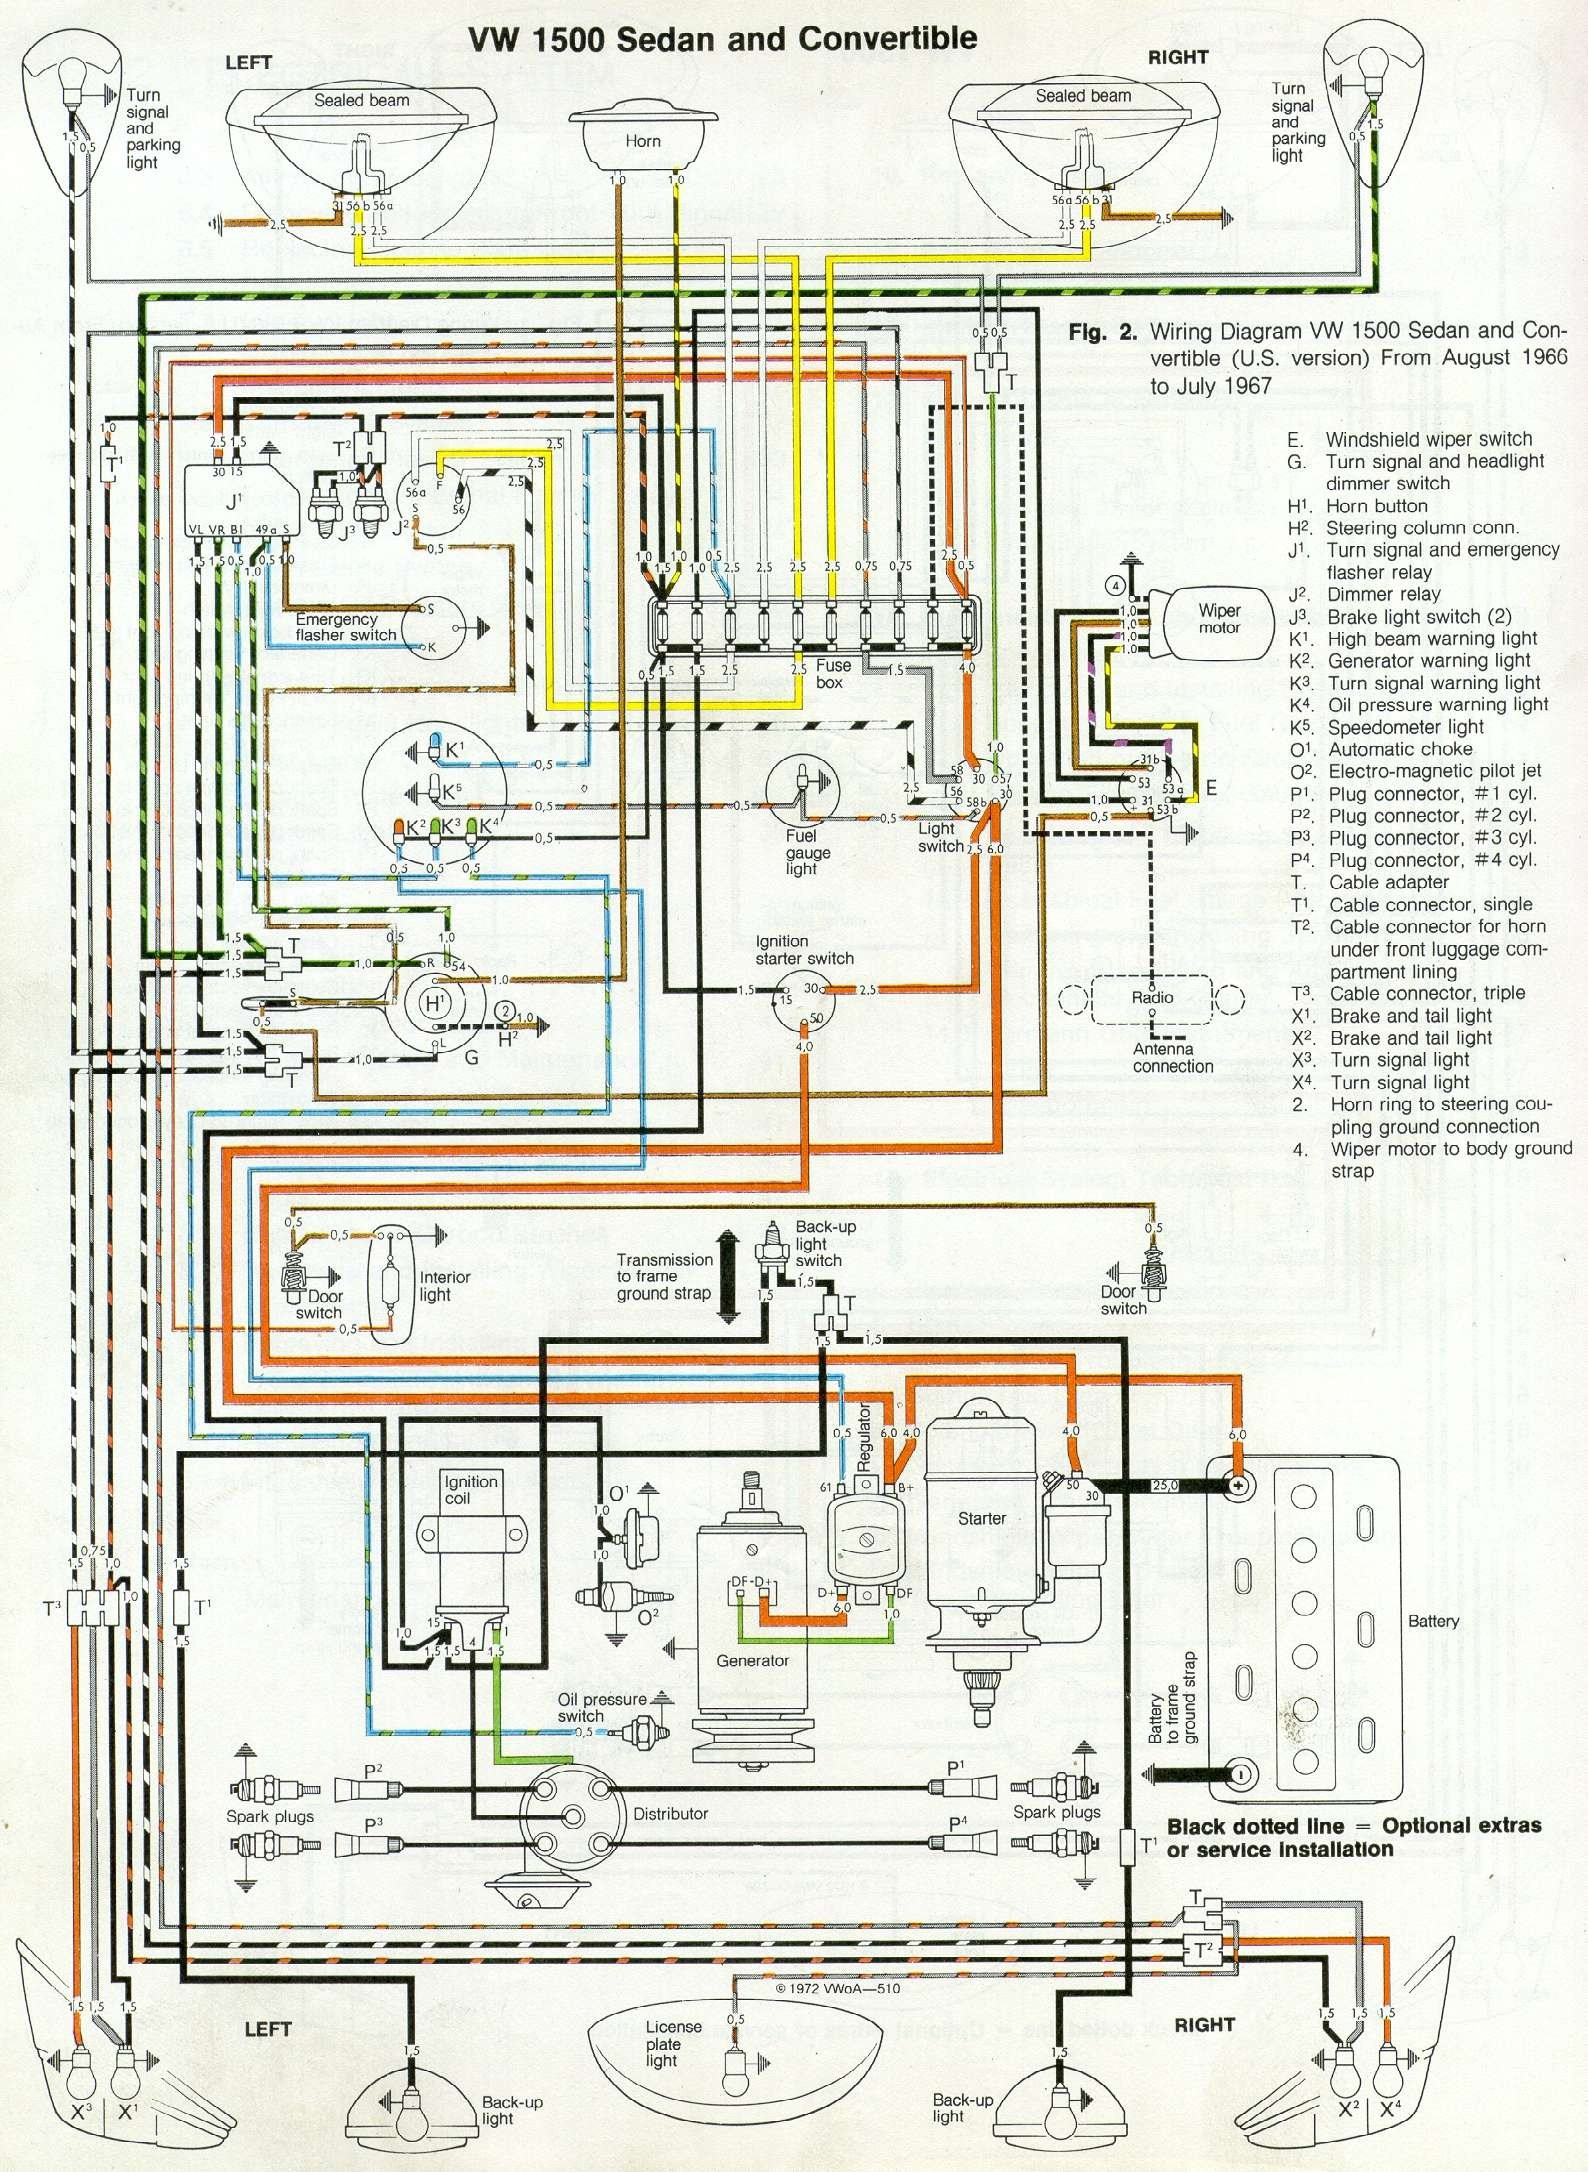 VW Beetle Wiring Digram vw beetle diagram vw beetle timing belt marks \u2022 wiring diagrams 2002 vw beetle wiring diagram at soozxer.org